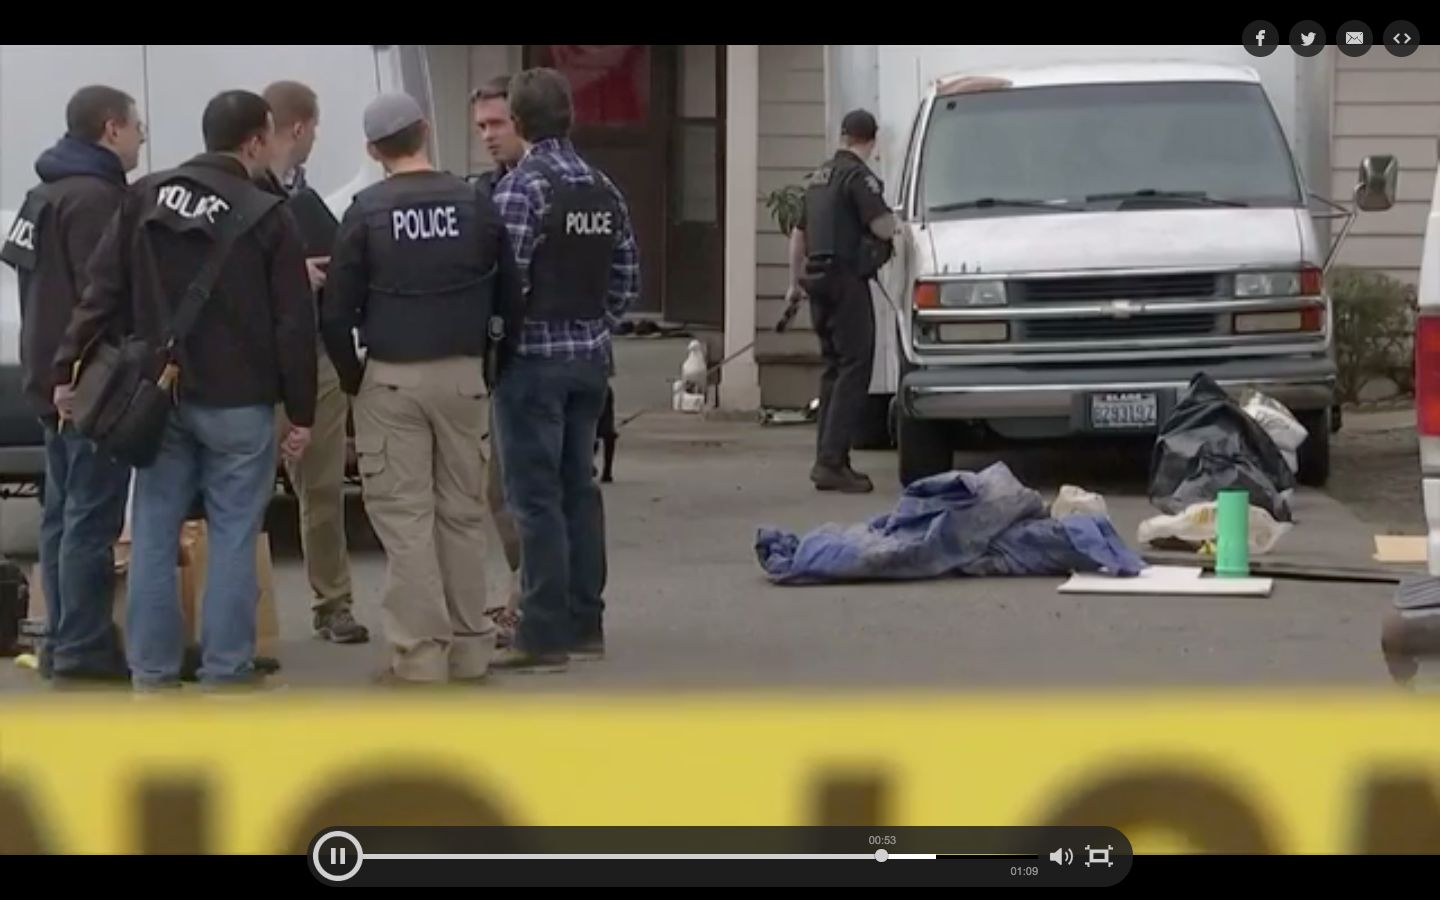 Police are investigating a shooting in Kent, Washington, on Friday that left a Sikh man wounded.